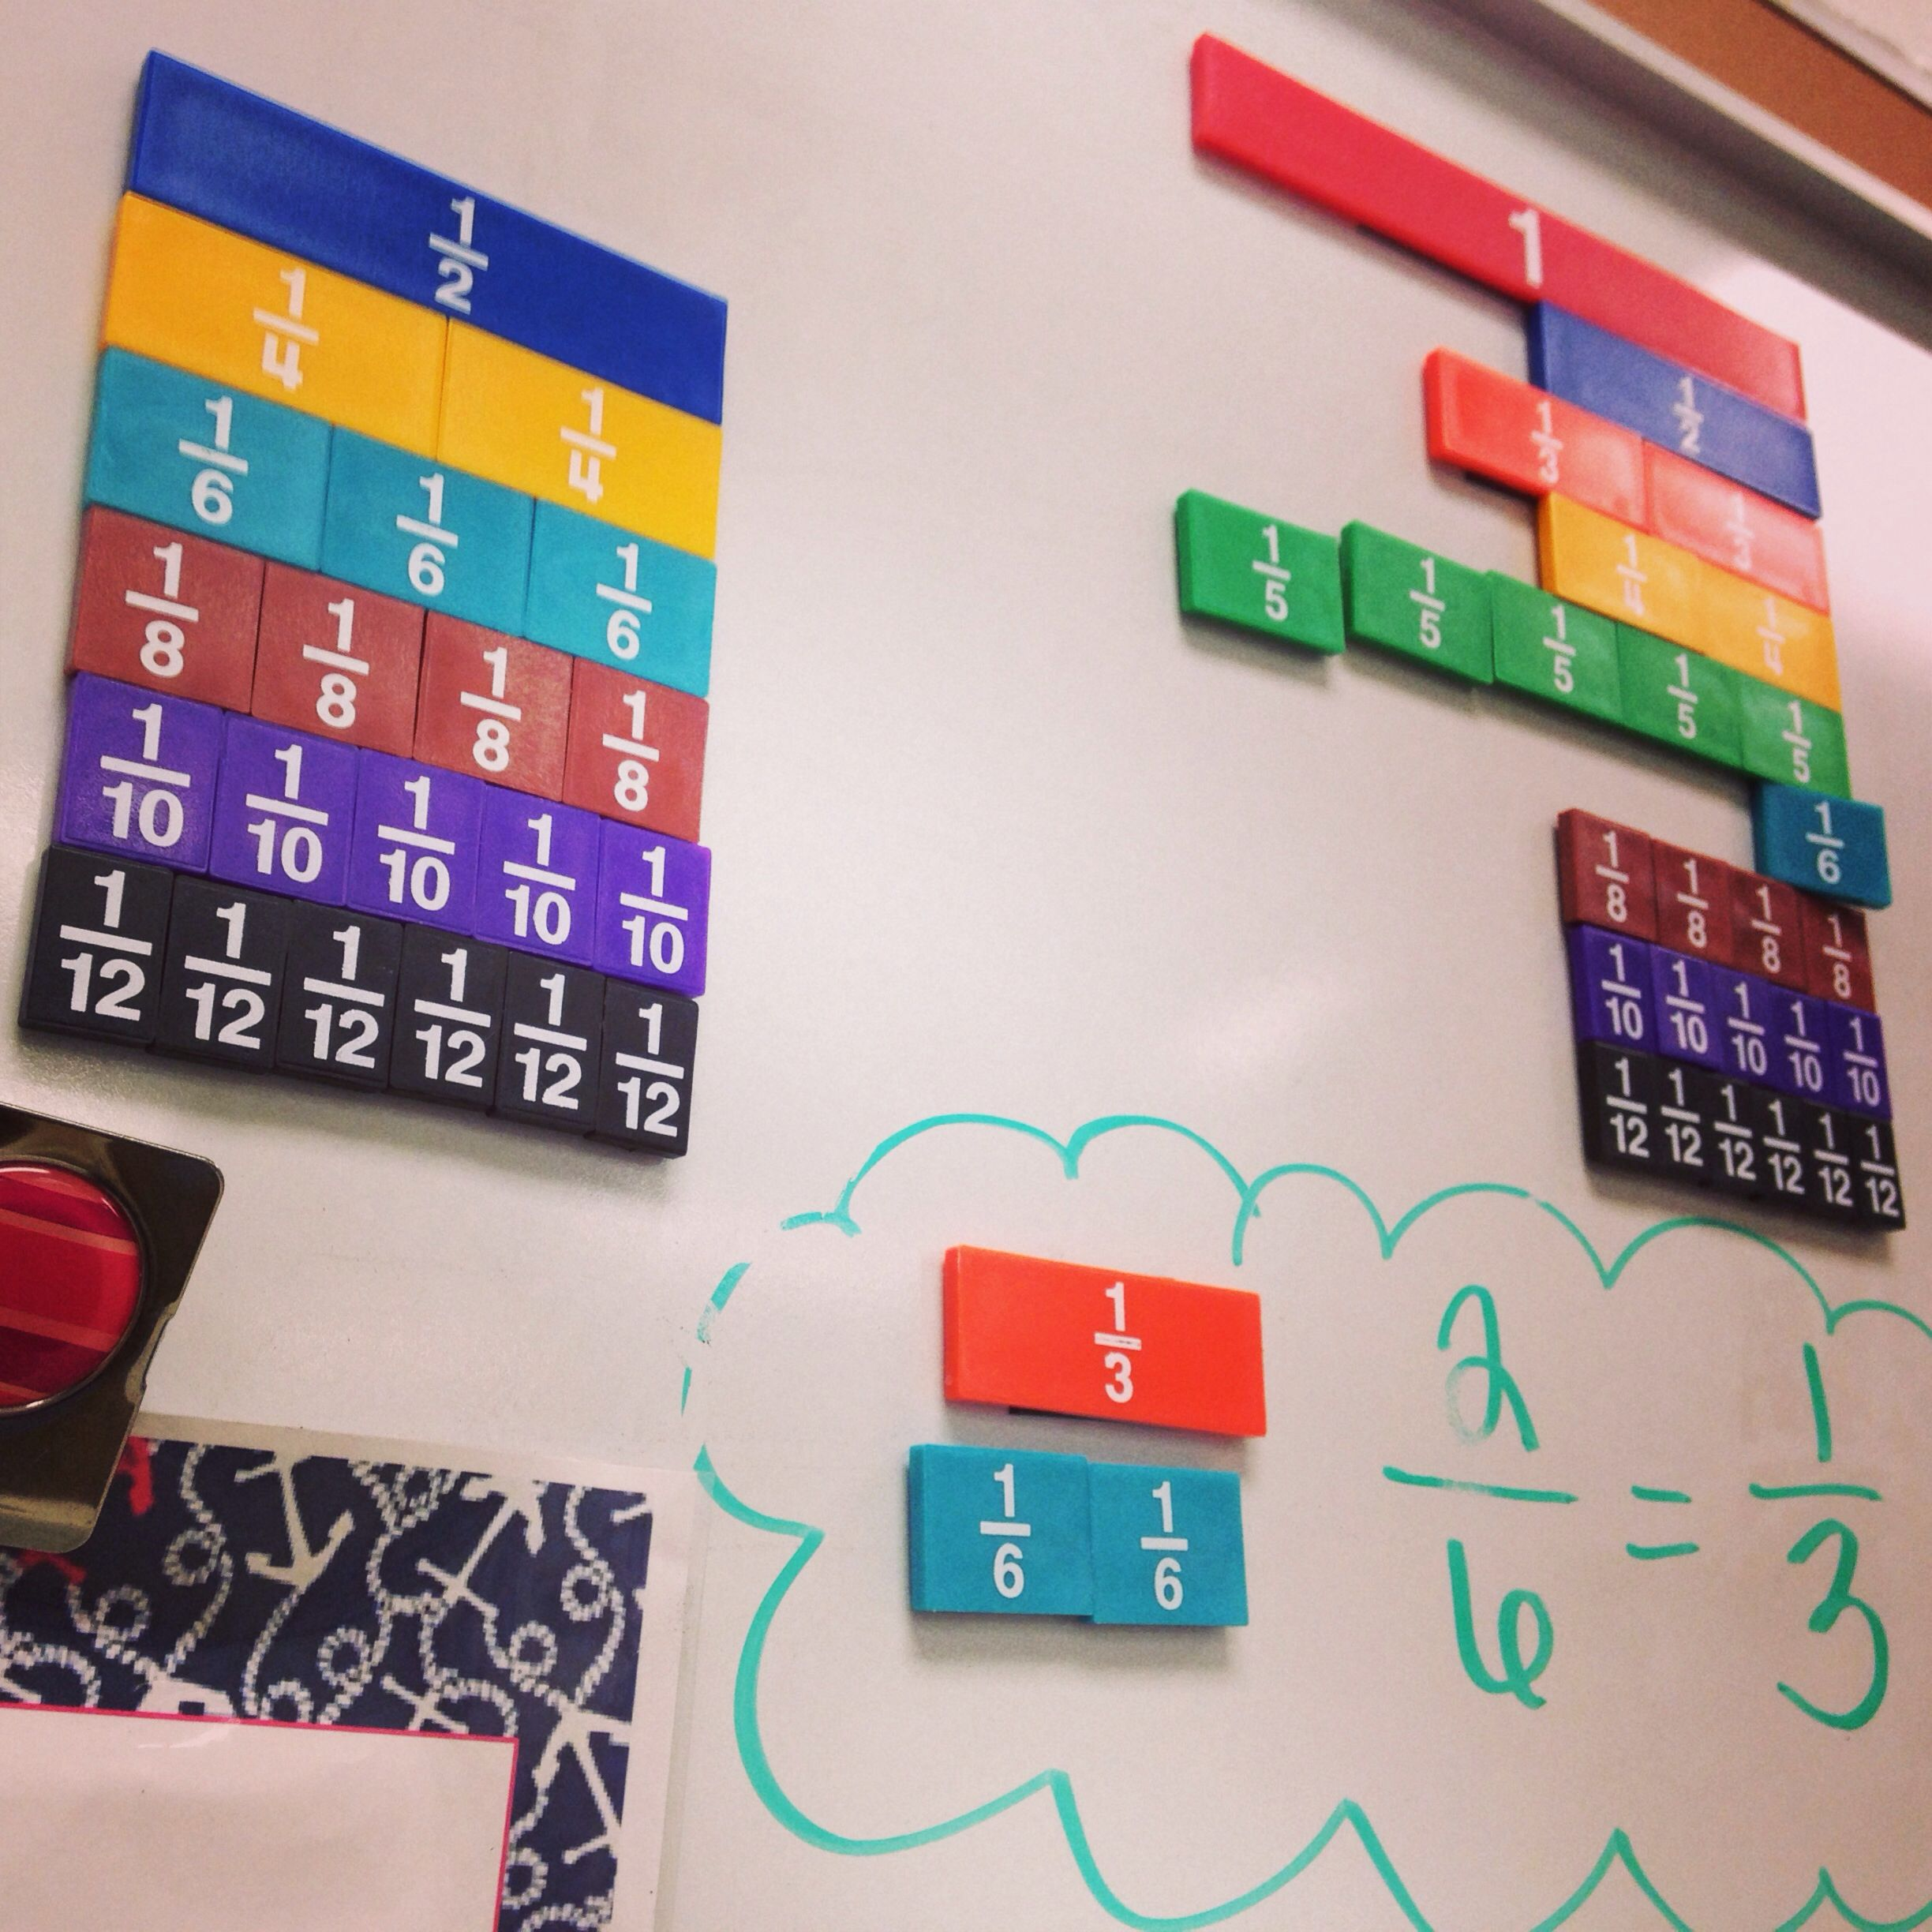 Magnetic Fractions Take Your Classroom Fraction Strips And Add Magnetic Tape To The Back Www Proverbsliving Org Math Gift 4th Grade Math Games Fractions [ 2448 x 2448 Pixel ]